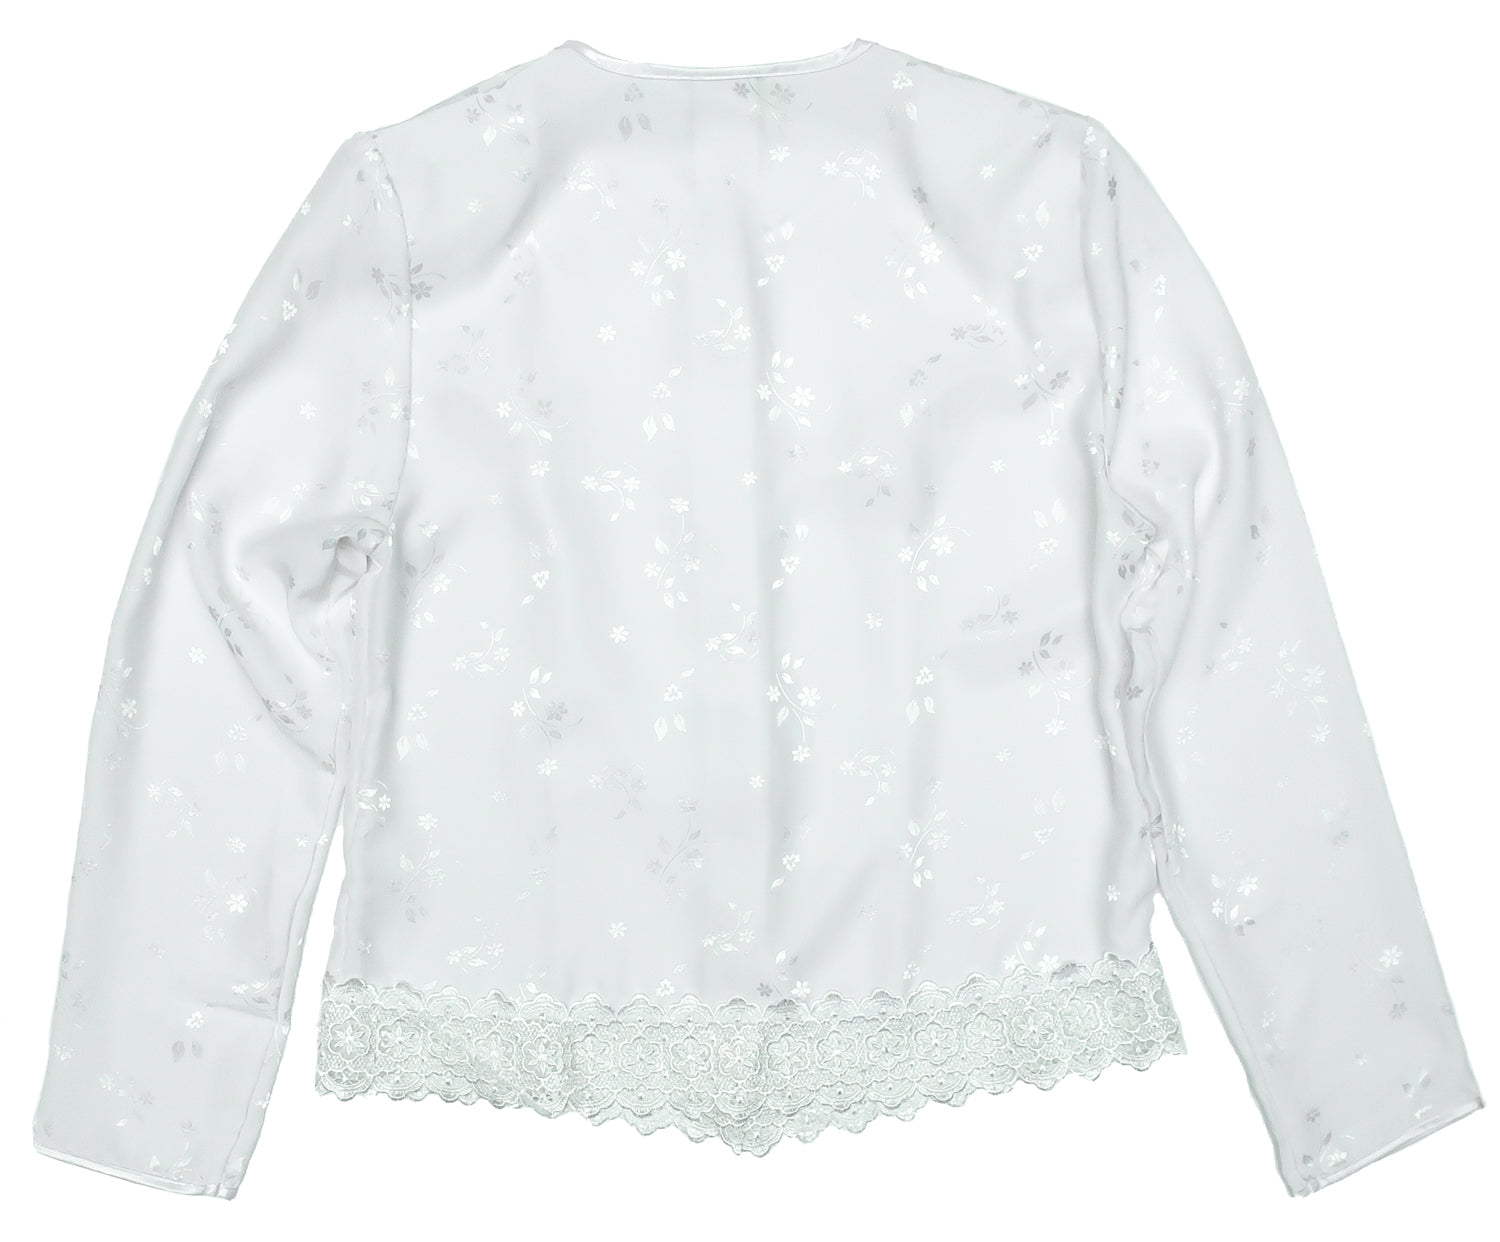 Second Room Vintage Clothing. Get in on the pajama blouse trend with this vintage long sleeve white polyester satin like blouse, with shiny floral pattern, fabric covered buttons and lace trim at the bottom. Free Shipping on all orders within North America.